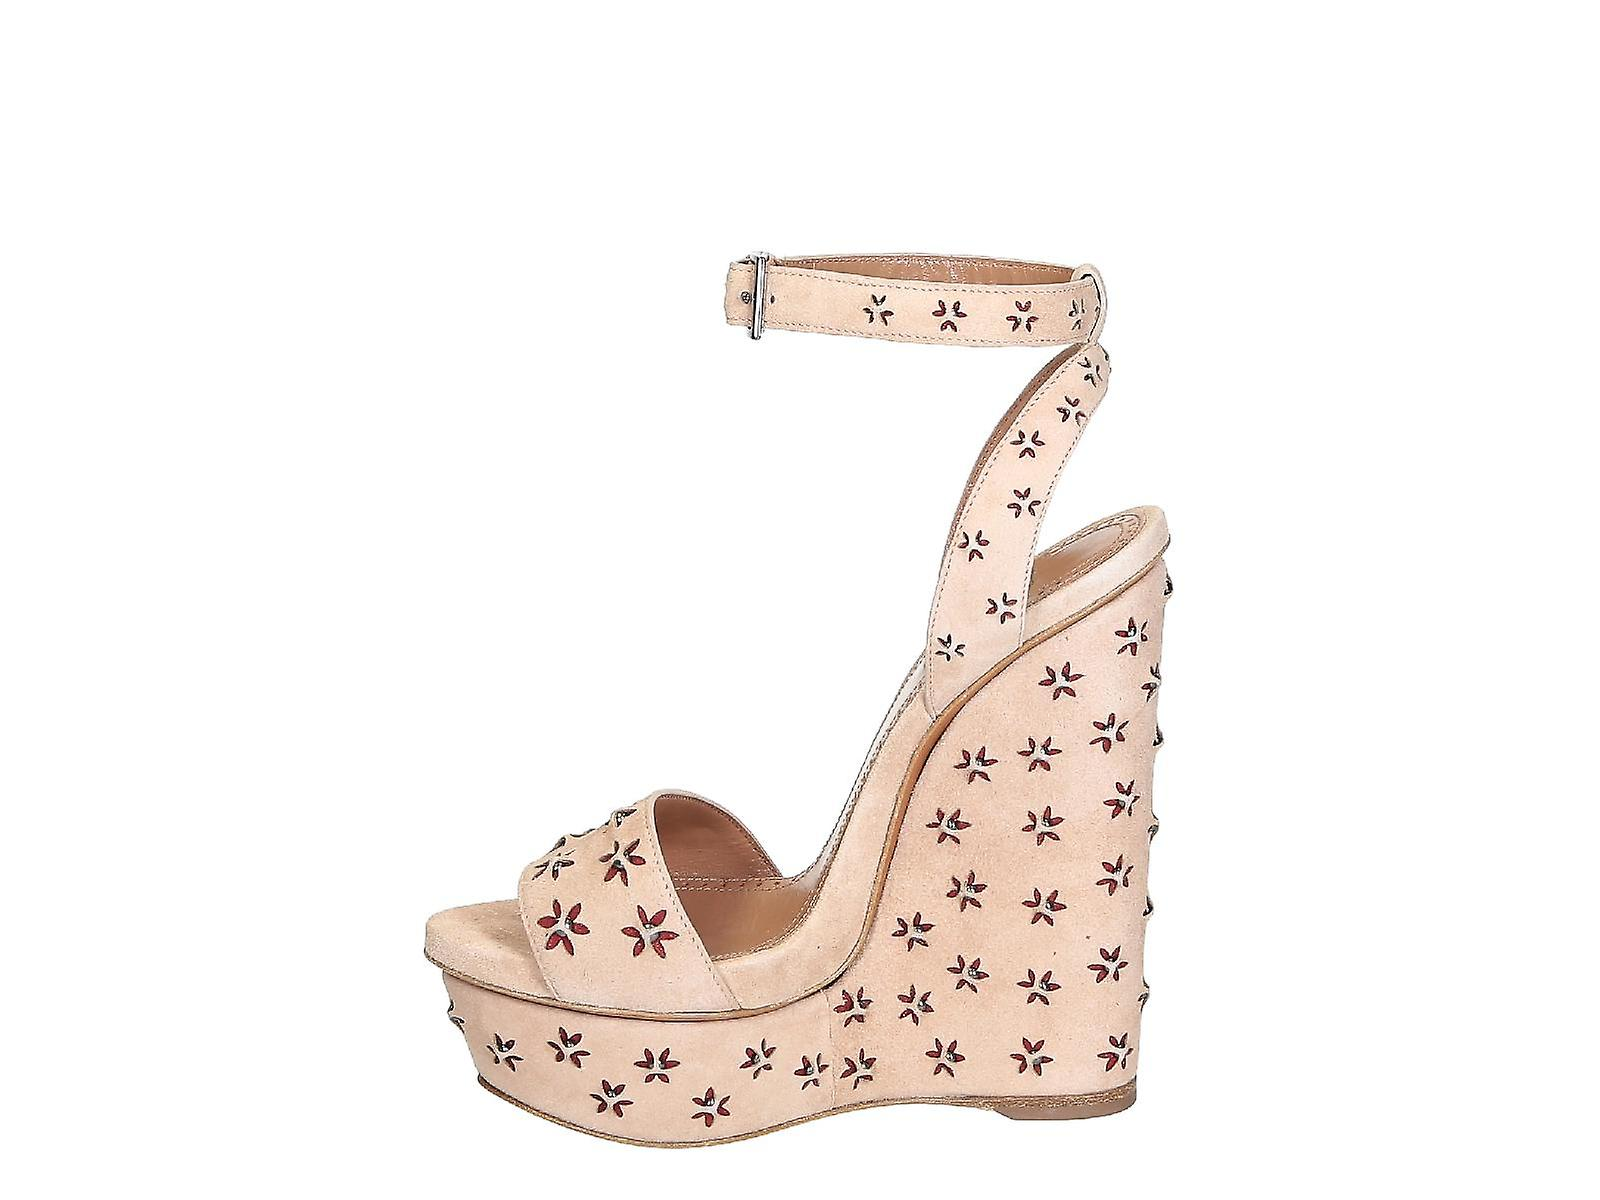 leather sandals Nude in Suede wedges Alaïa pA0waa